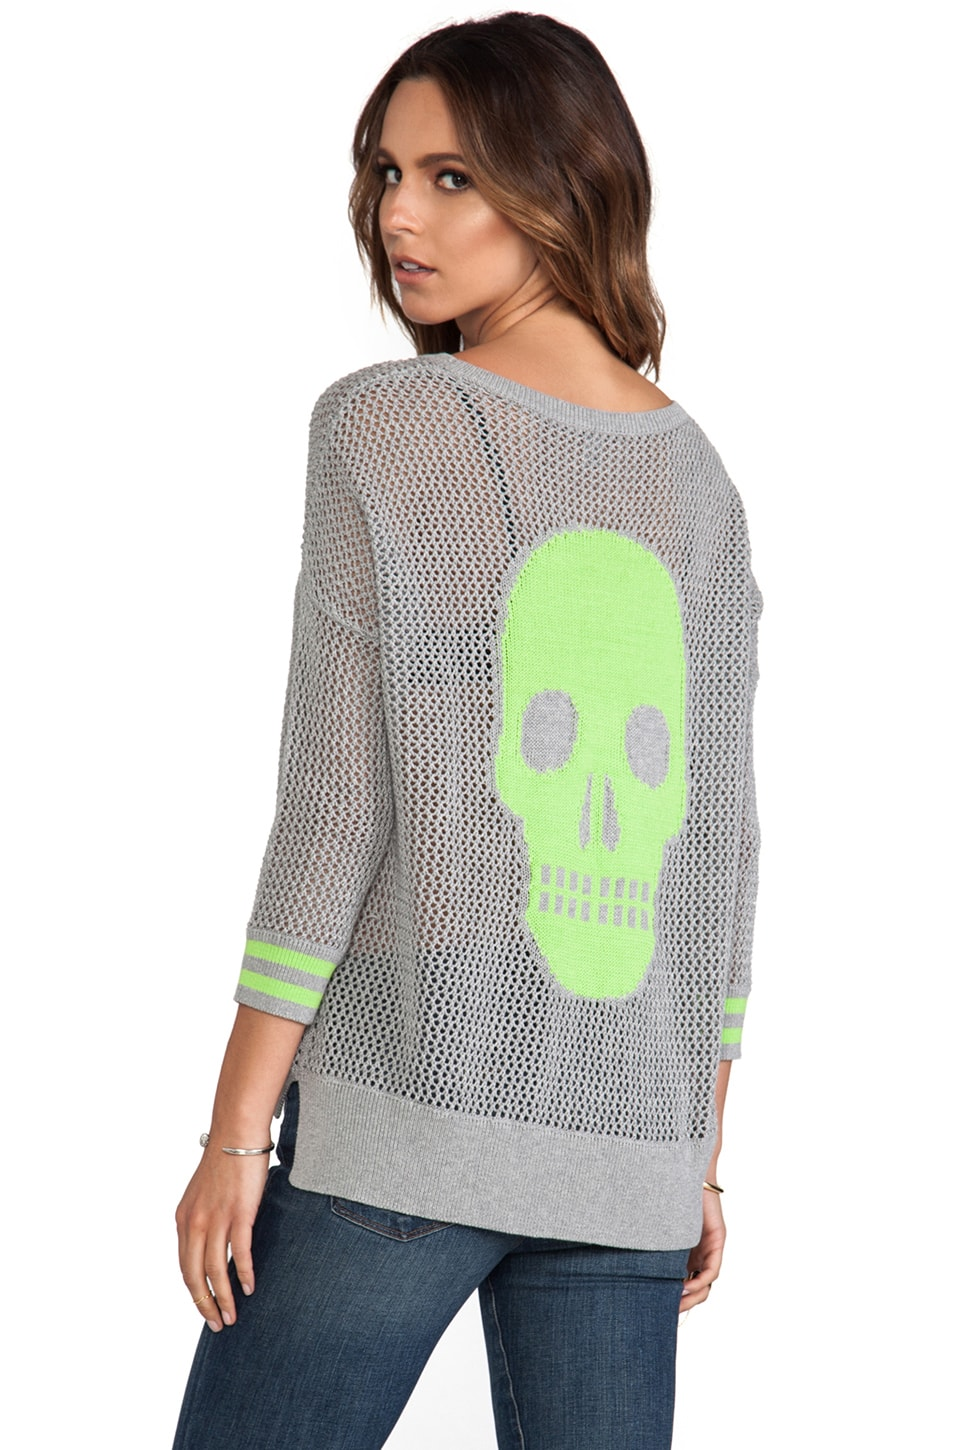 Autumn Cashmere Mesh Skull Sweater in Sweatshirt & Lime Drop